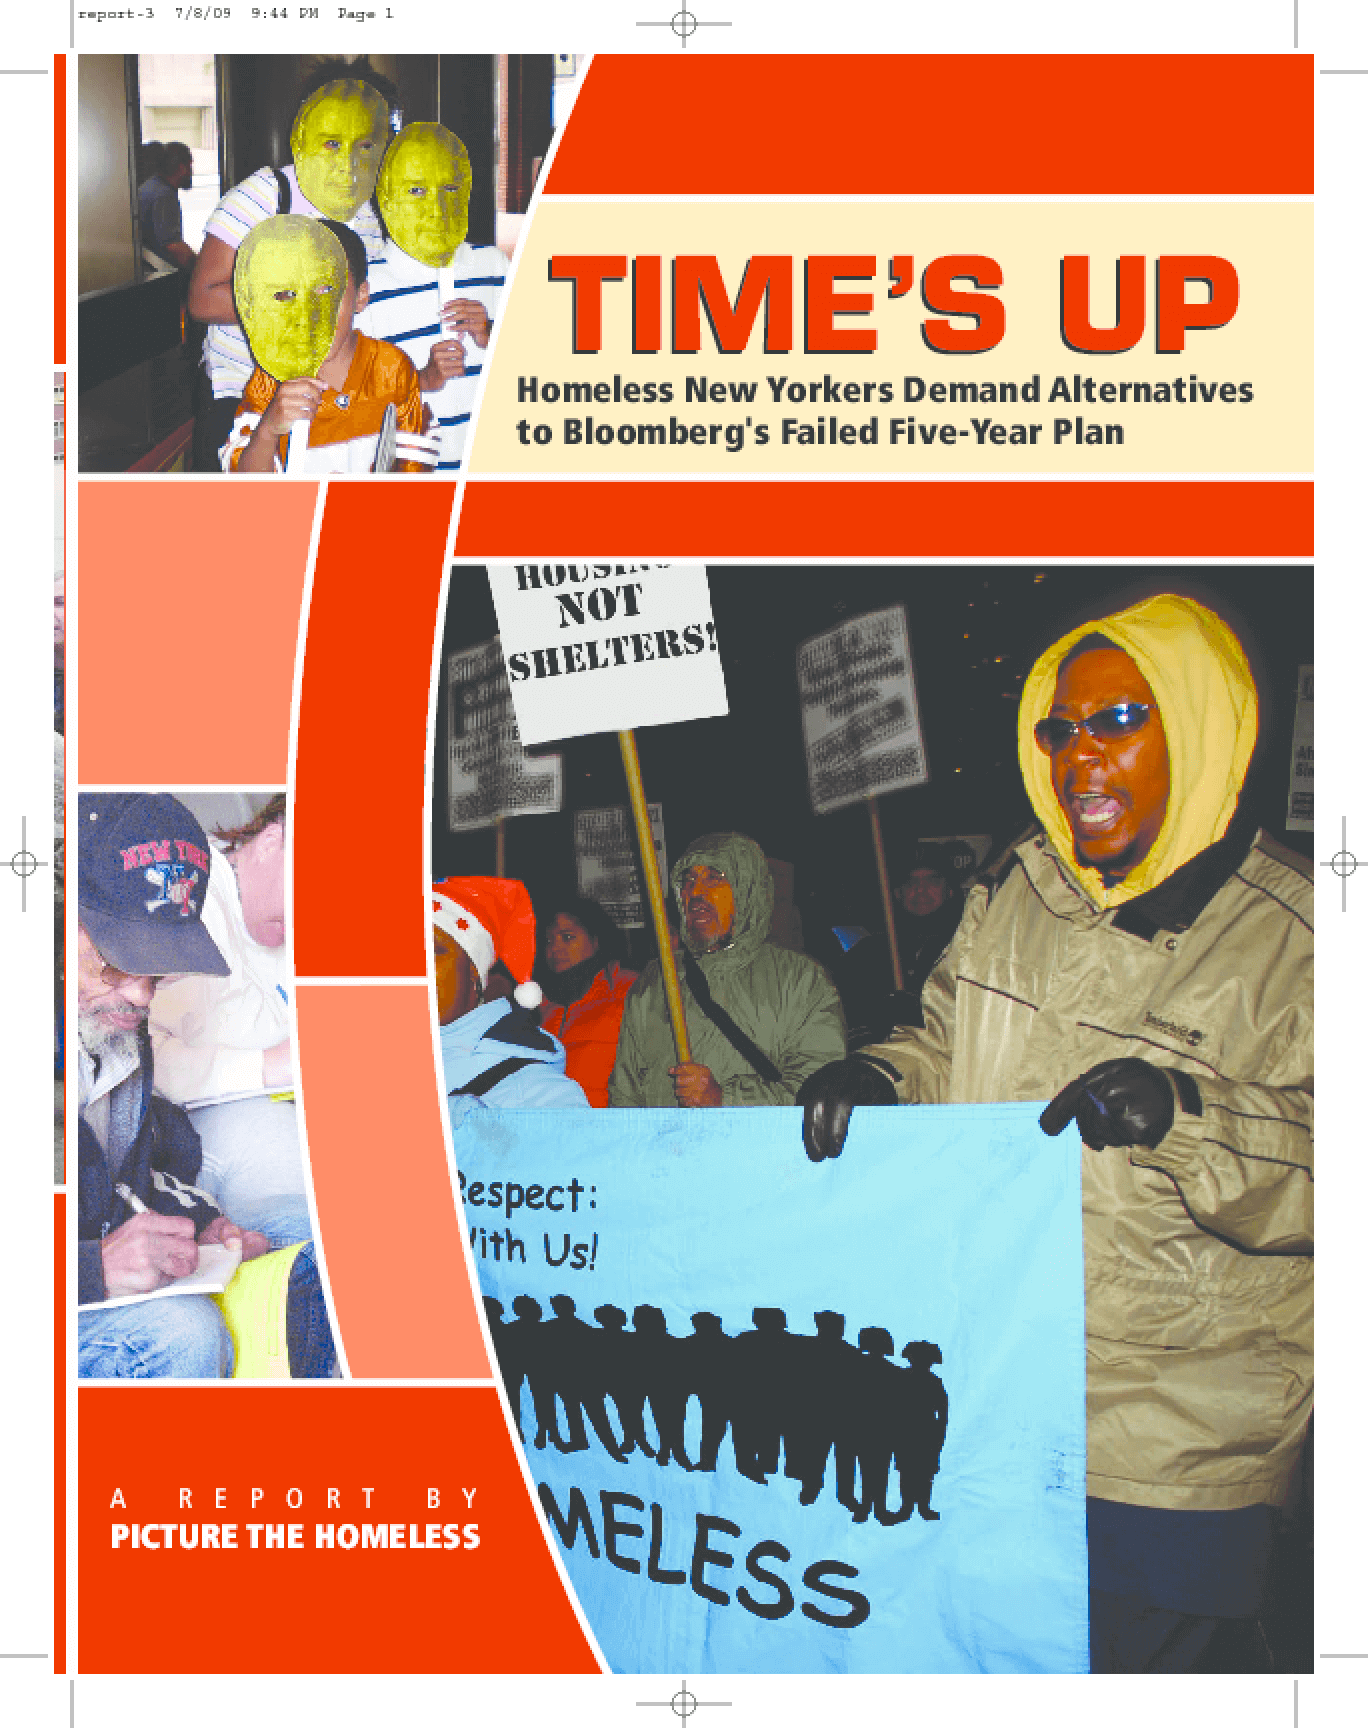 Time's Up: Homeless New Yorkers Demand Alternatives to Bloomberg's Failed Five-Year Plan